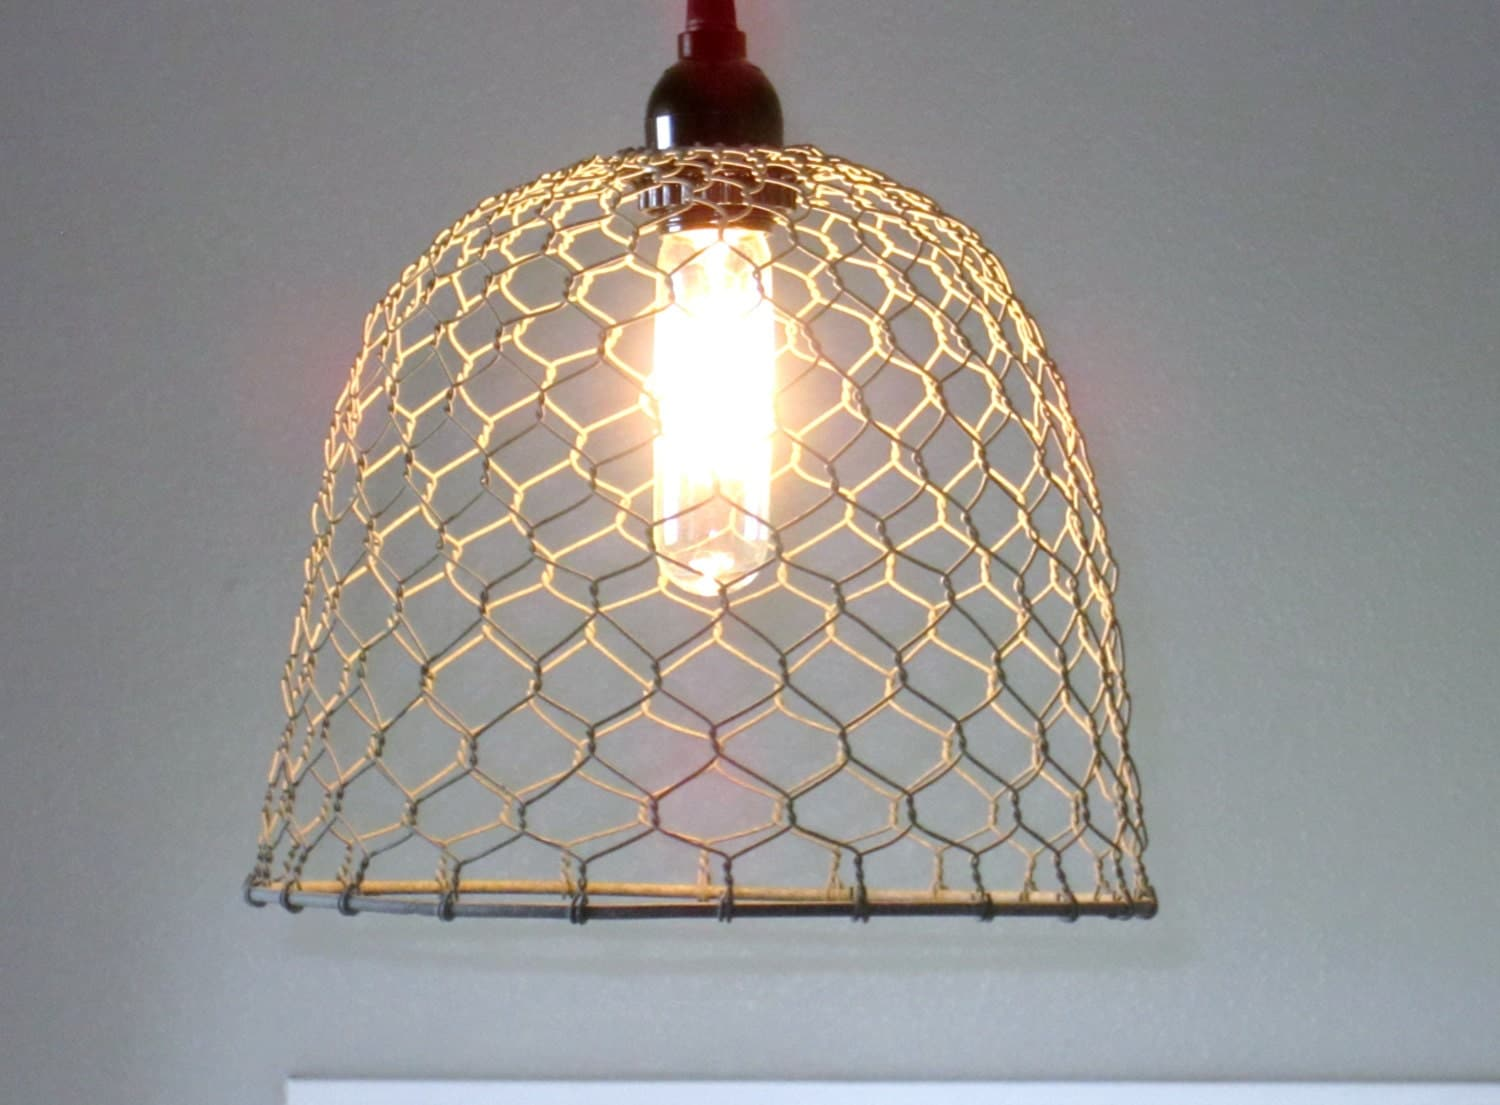 farmhouse chandelier farmhouse kitchen lighting fixtures Rustic Pendant Lighting chicken wire farmhouse pendant light lighting rustic lighting kitchen lighting